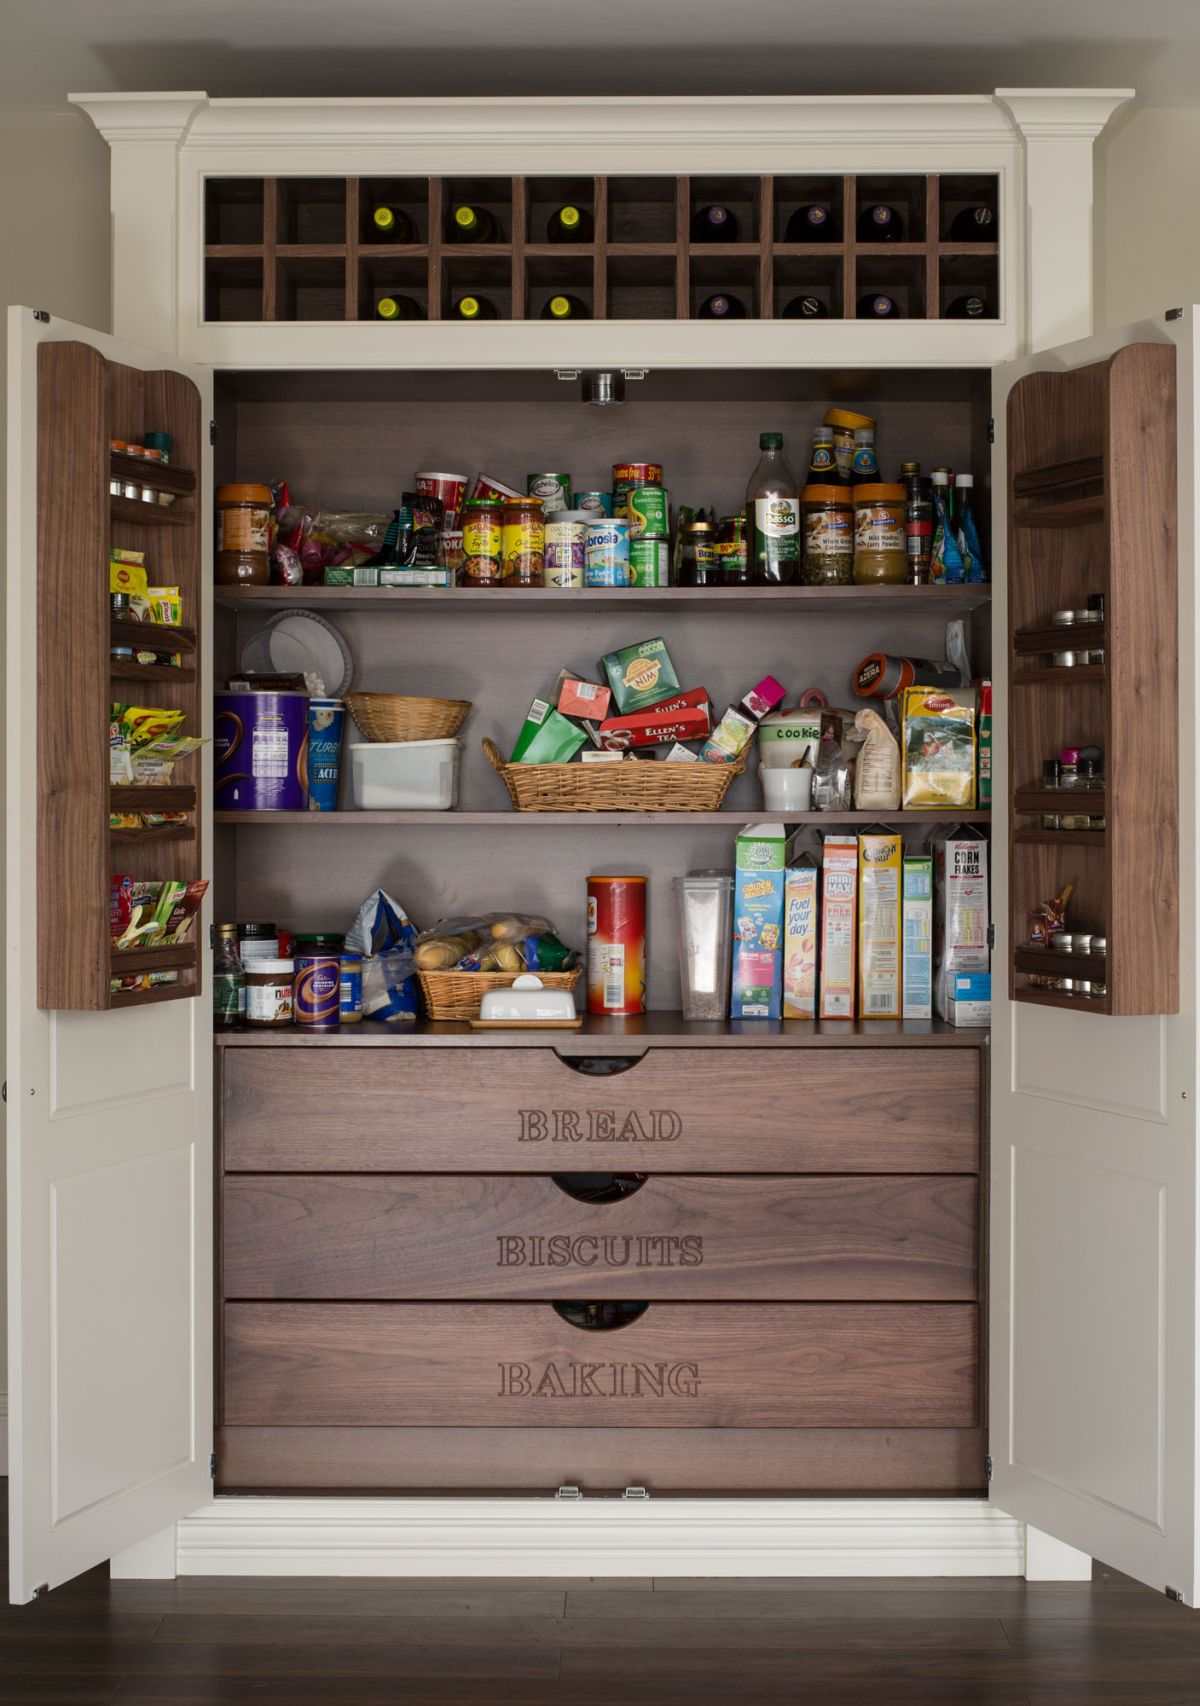 15 kitchen pantry ideas with form and function - Pantry Design Ideas